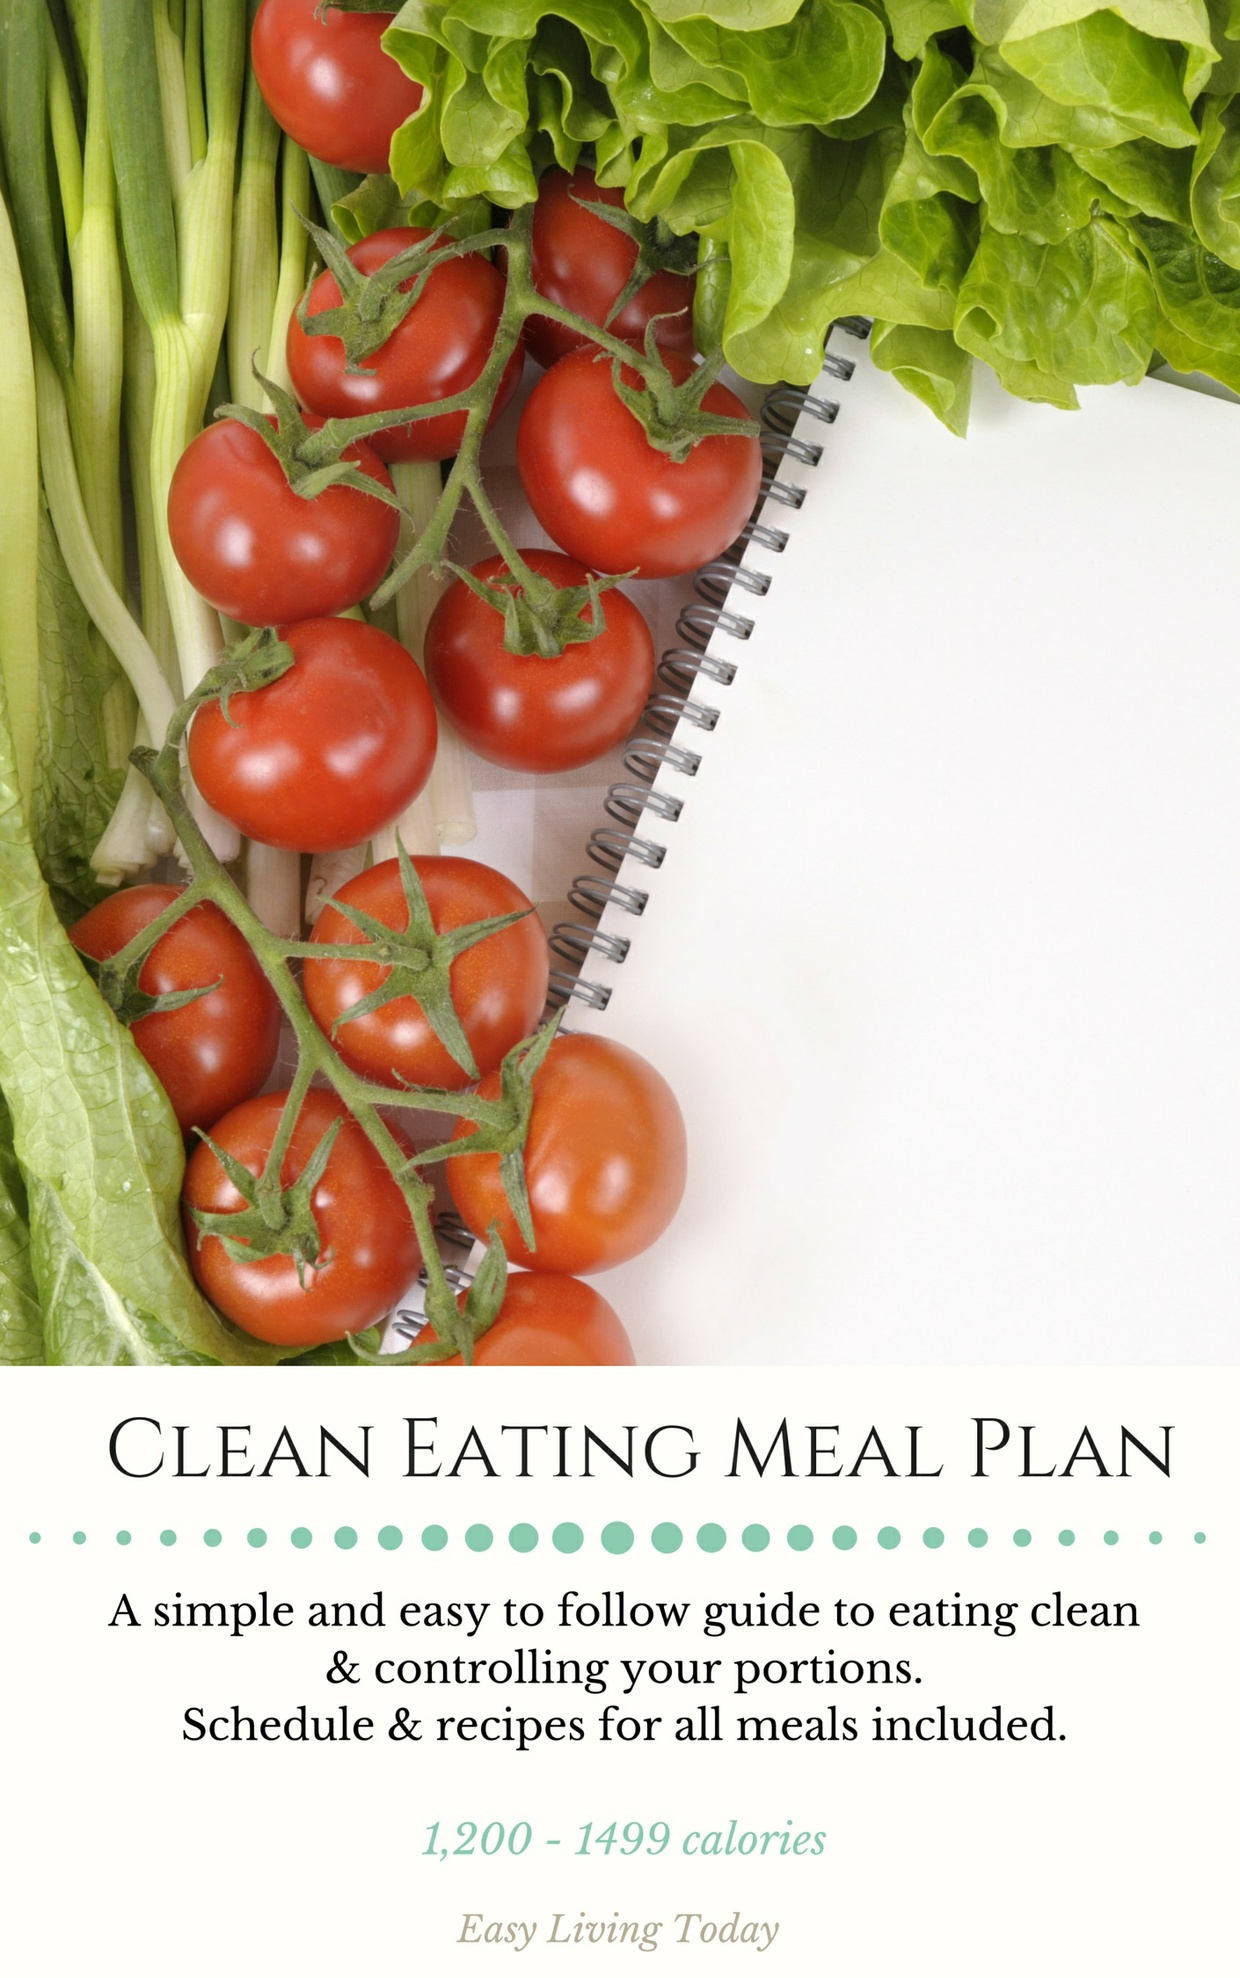 21 Day Meal Plan (1,200-1,499 Calories)